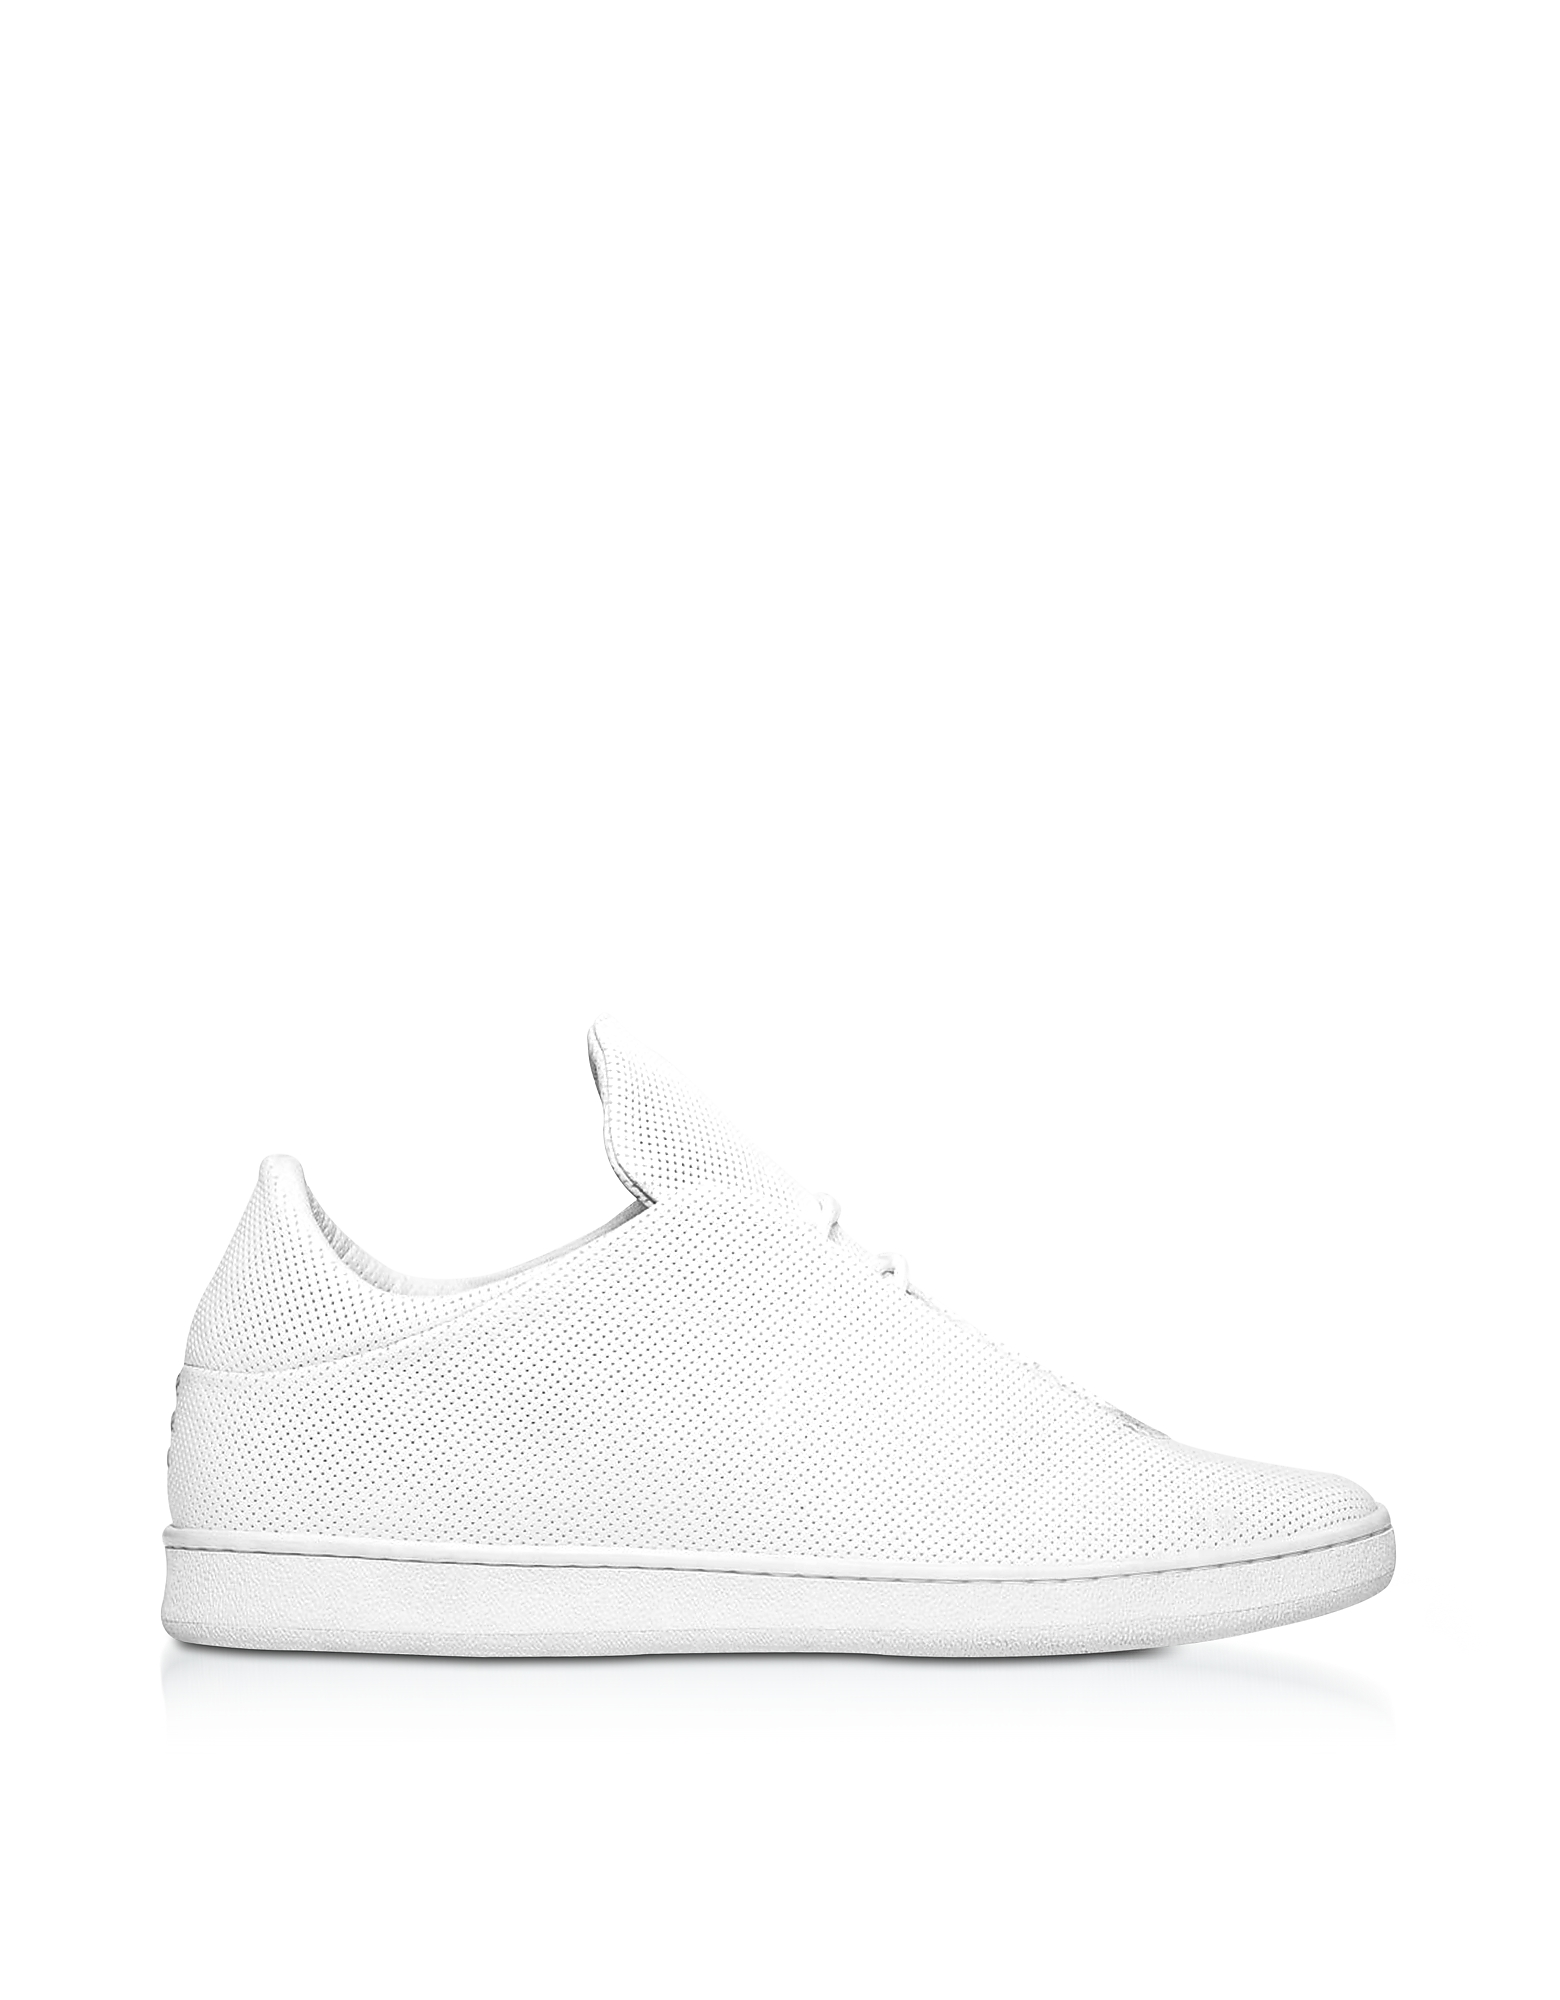 Ylati Shoes, Virgilio White Perforated Nappa Leather Low Top Men's Sneakers